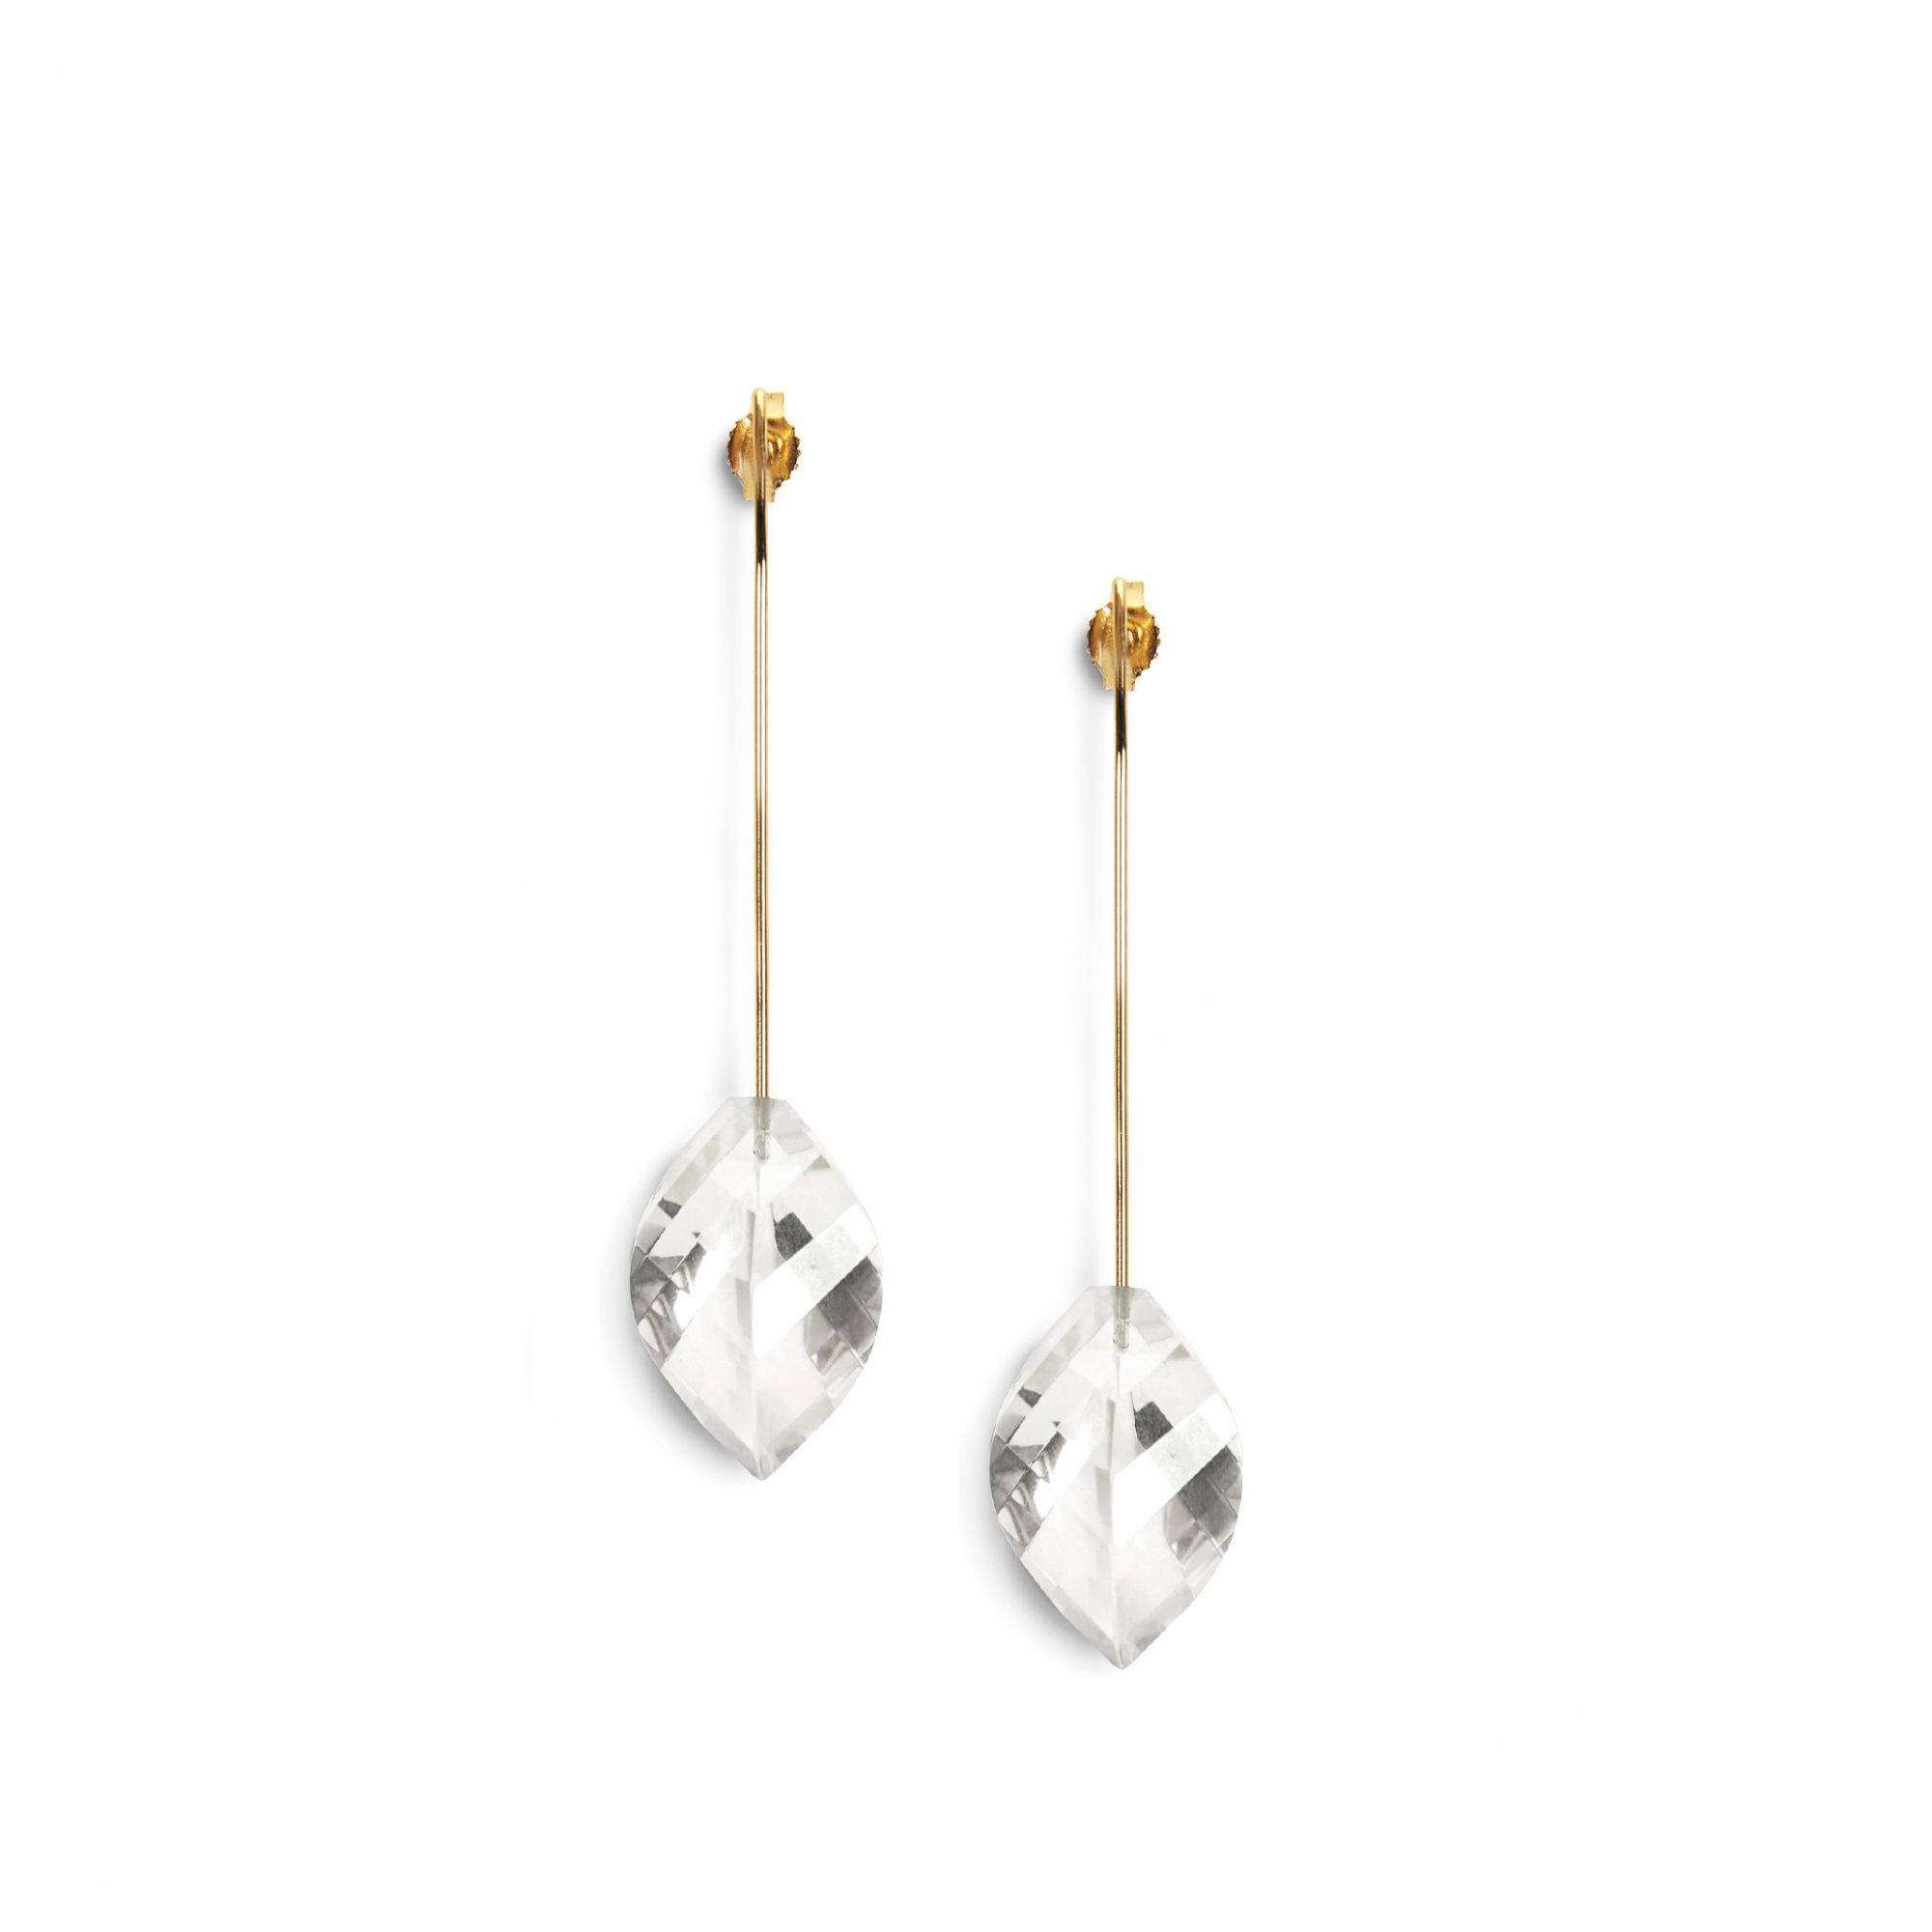 Yellow gold 'Amo' earrings Yellow gold earrings with rock crystals